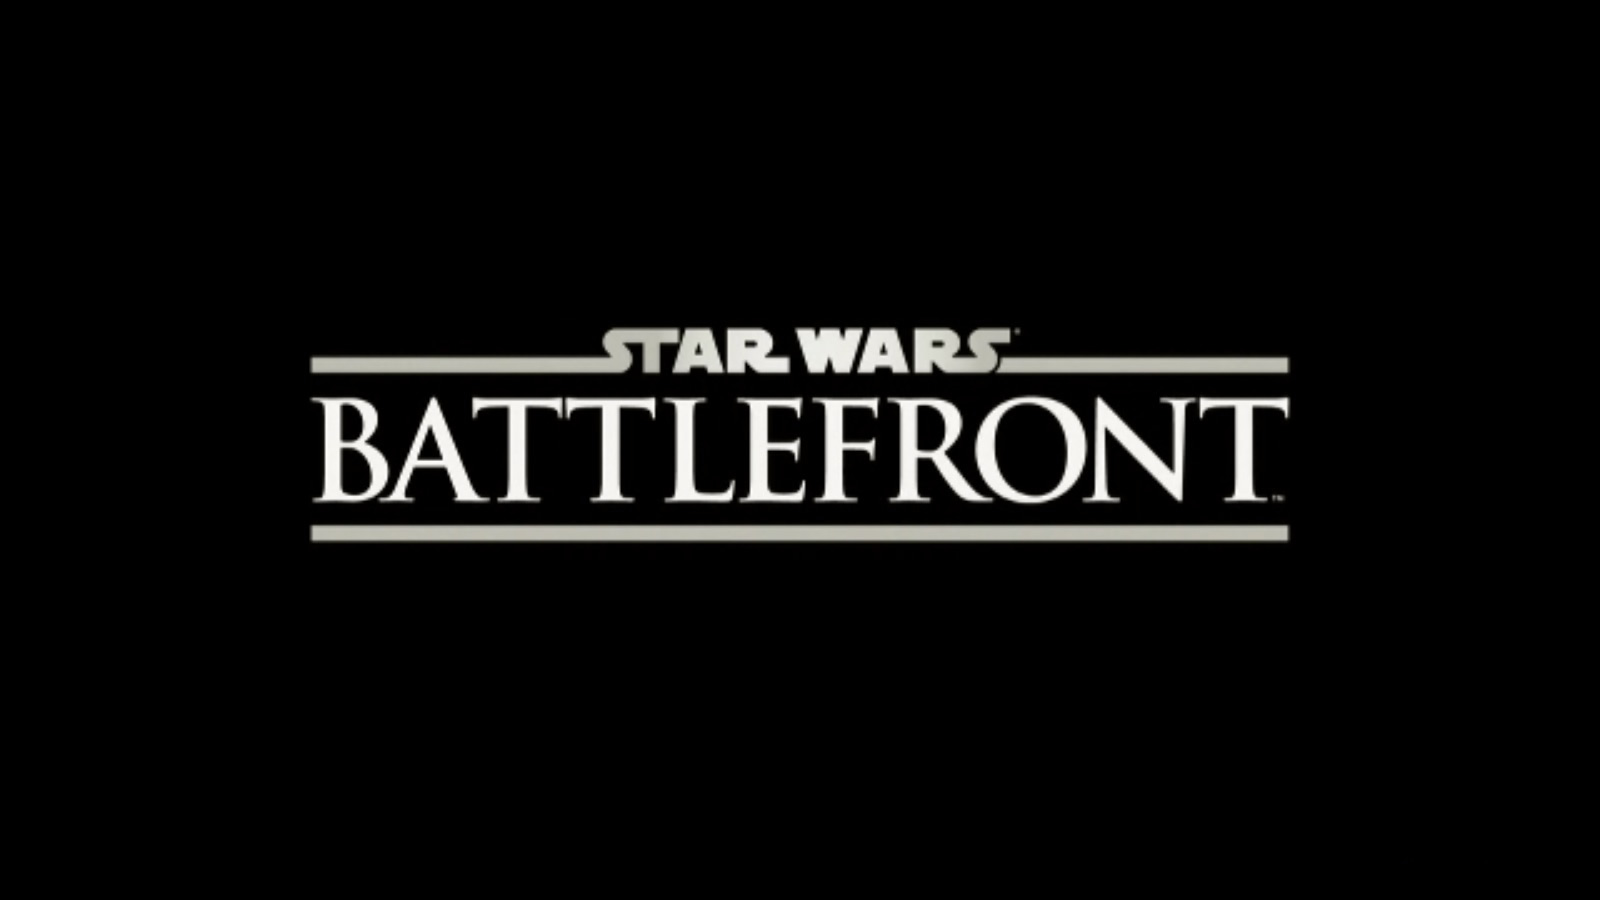 EA Reveals Star Wars: Battlefront at E3